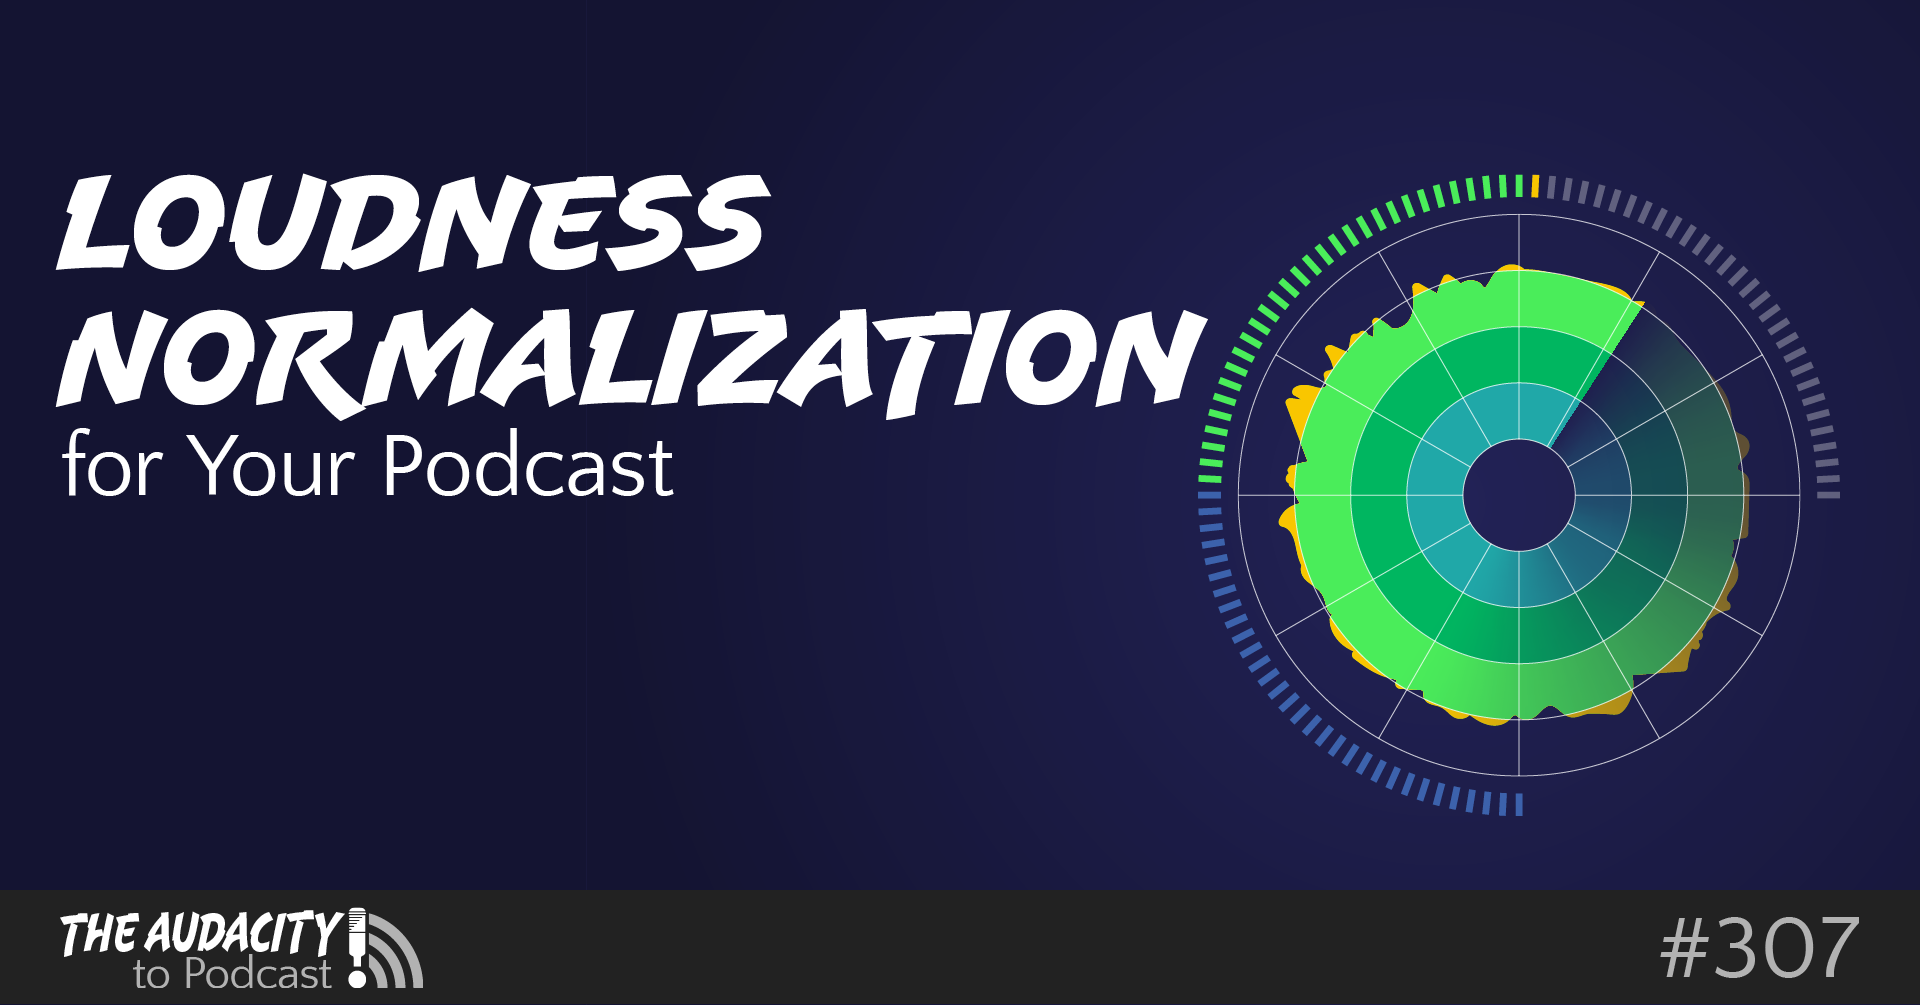 Why and How Your Podcast Needs Loudness Normalization